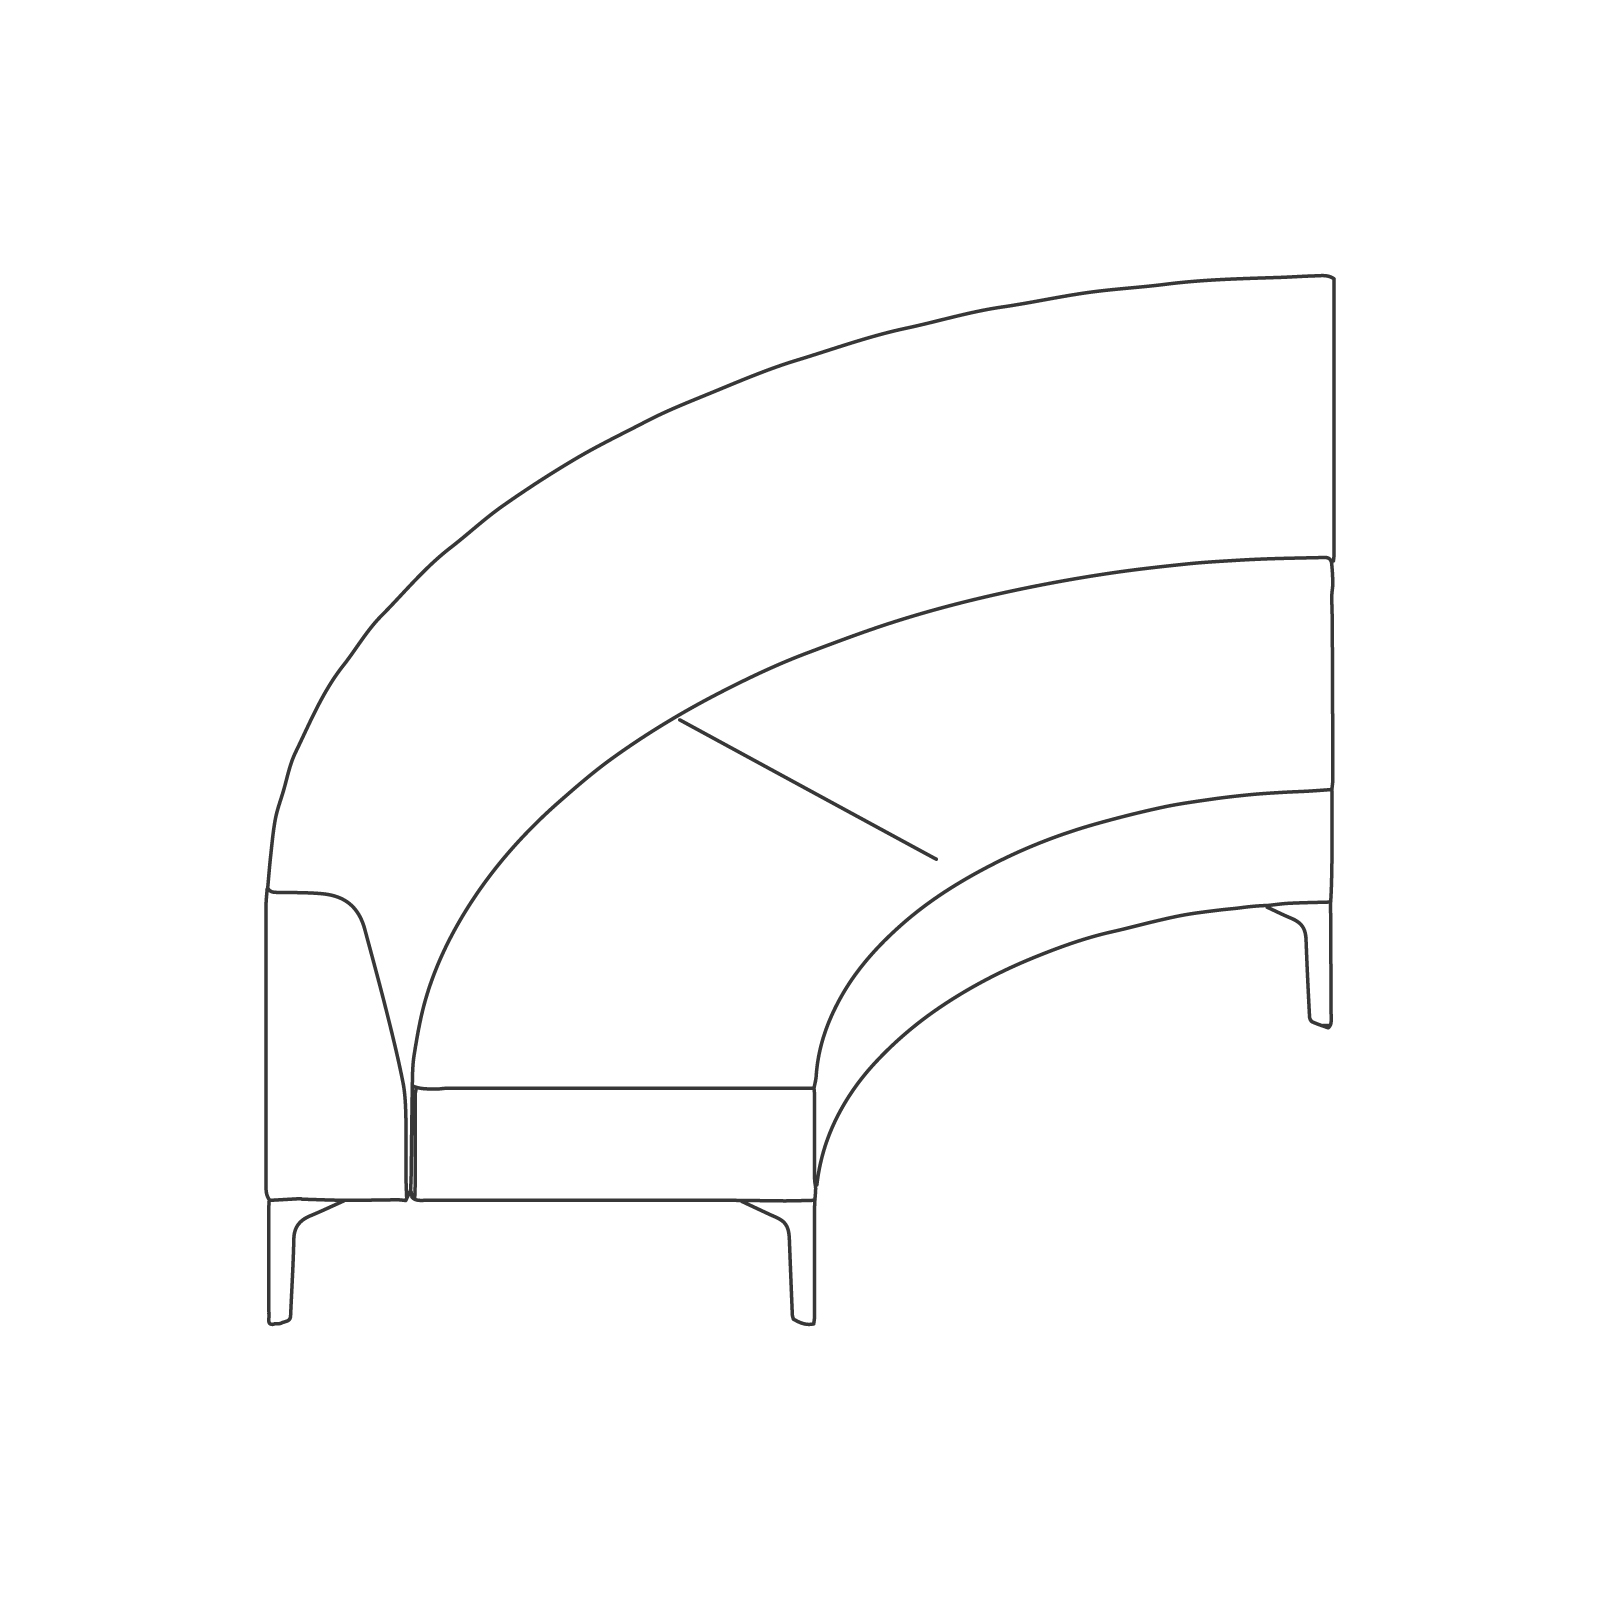 A line drawing of Symbol Modular Seating–Curve.